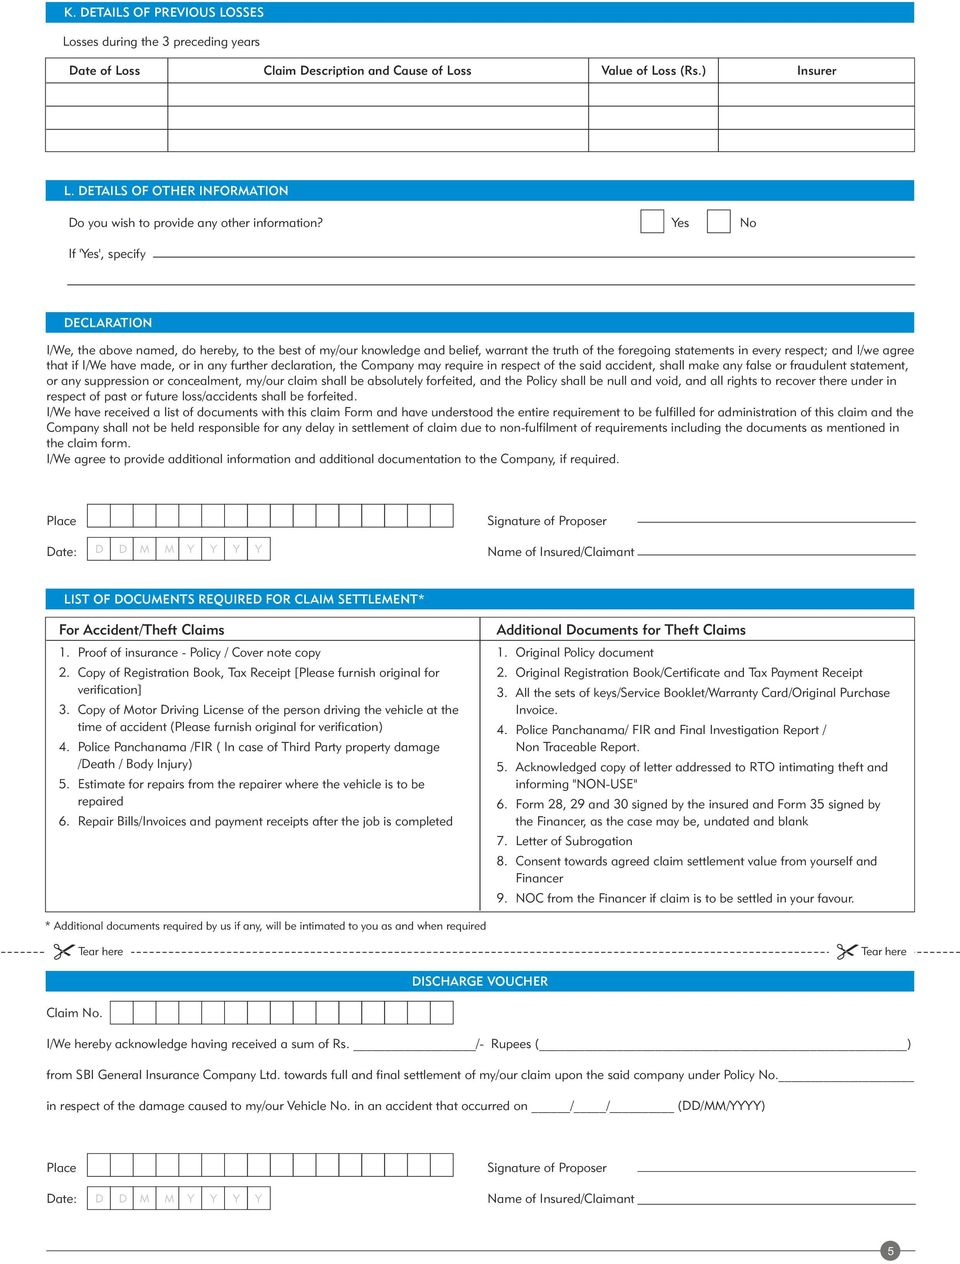 Yes No If 'Yes', specify DECLARATION I/We, the above named, do hereby, to the best of my/our knowledge and belief, warrant the truth of the foregoing statements in every respect; and I/we agree that